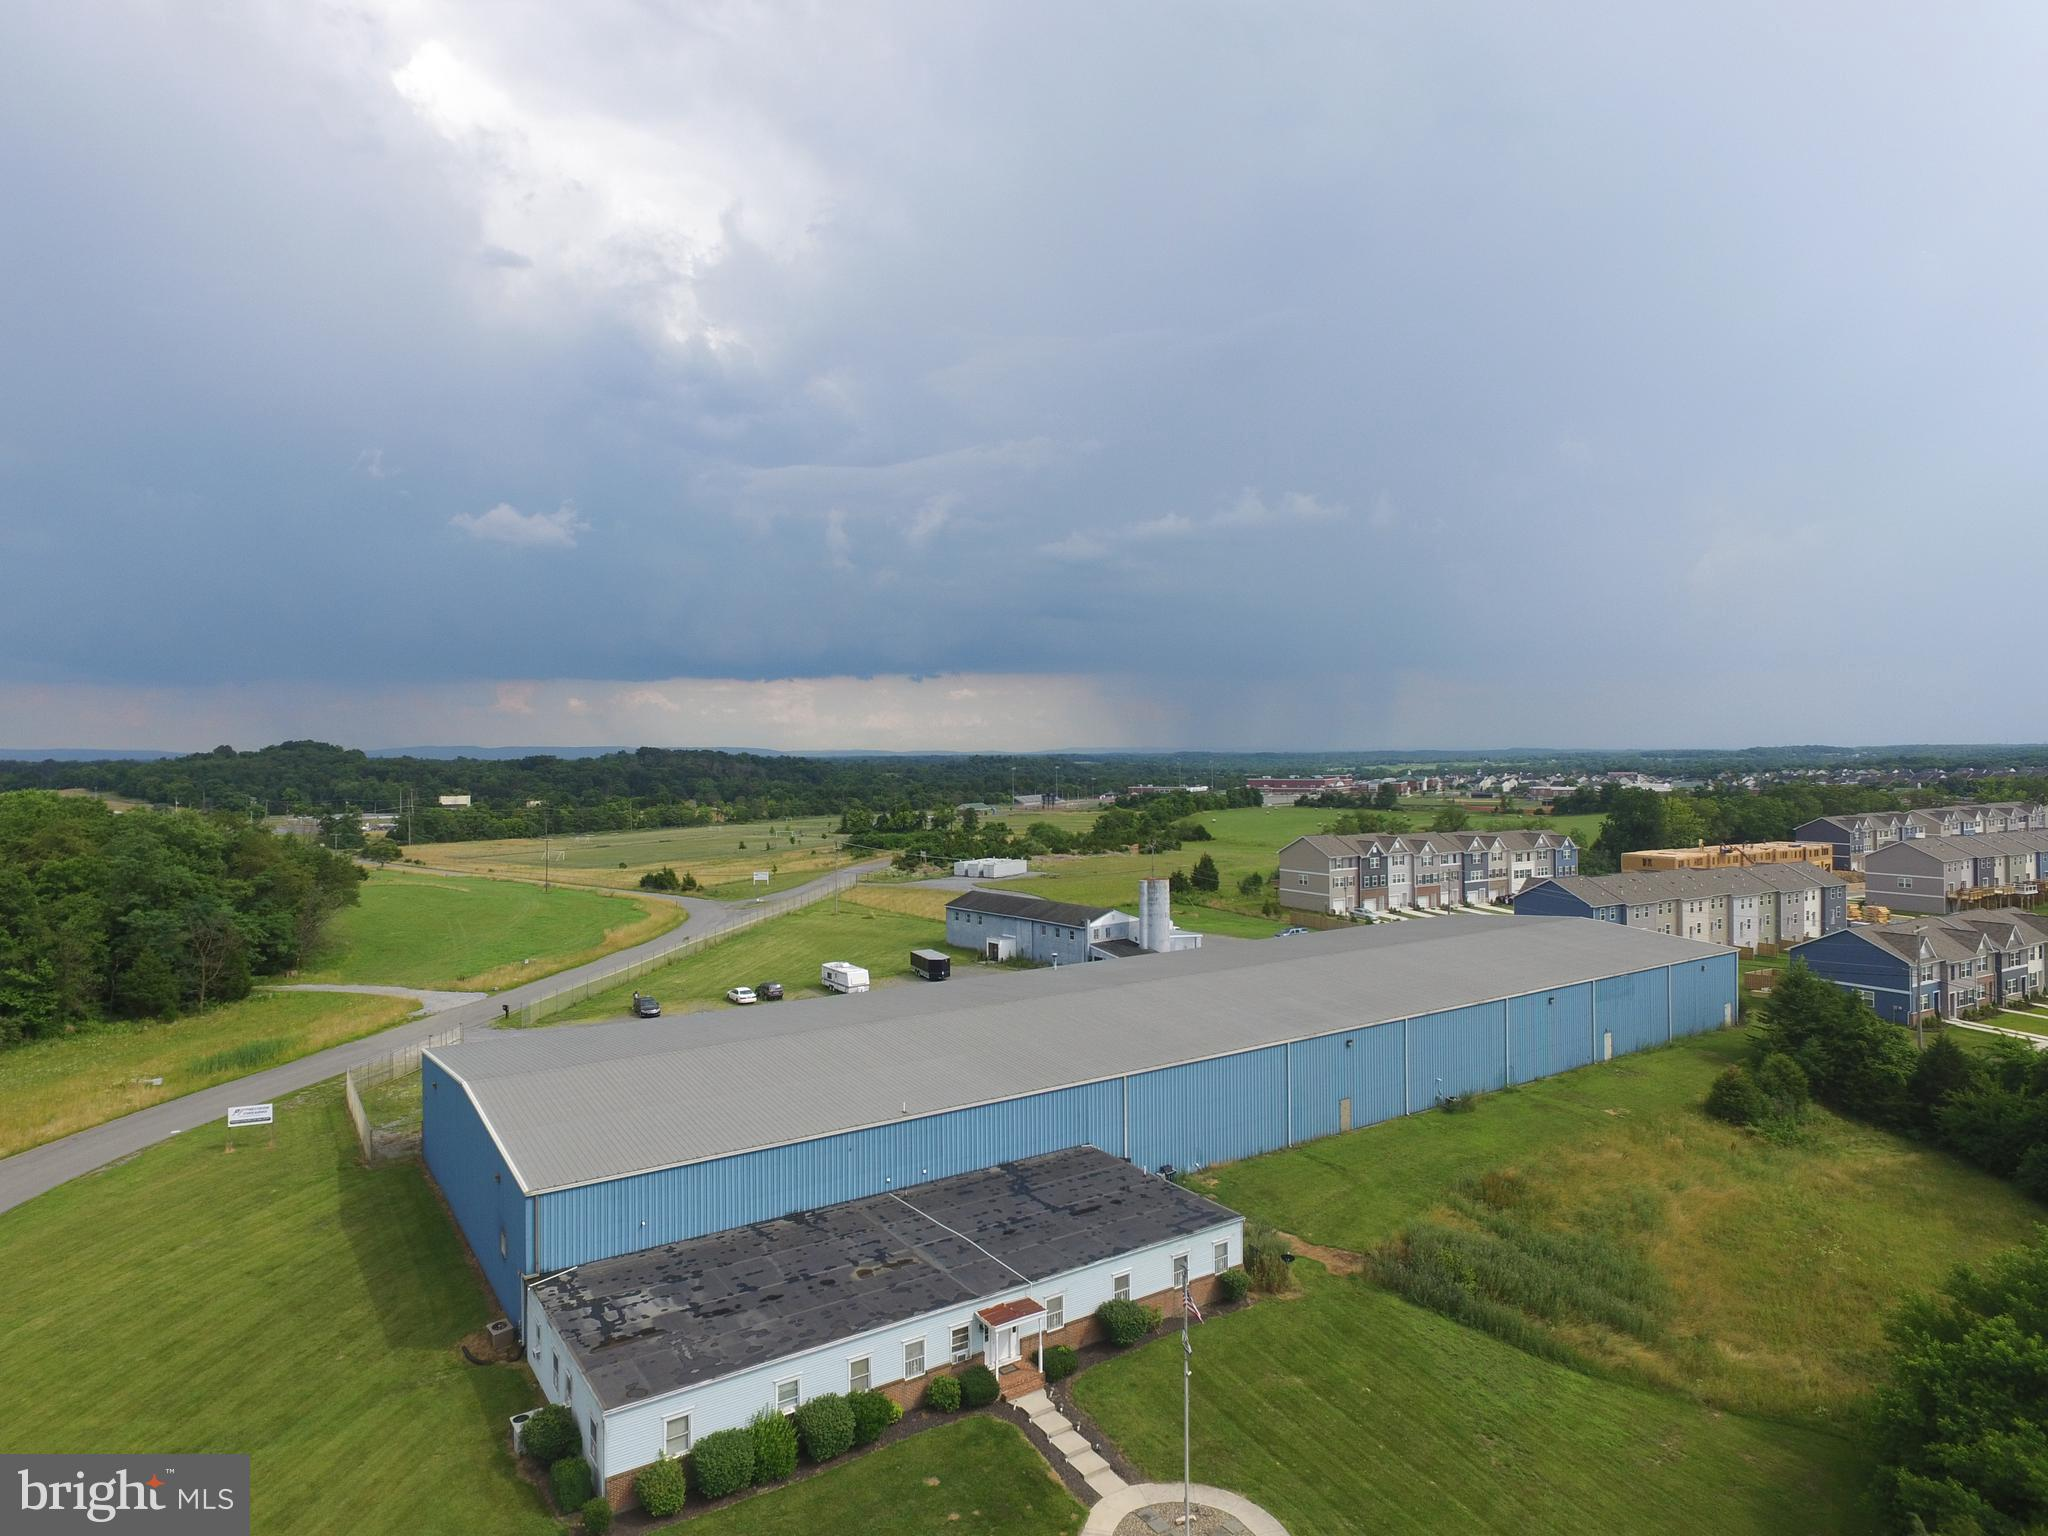 Total of 49000sqft in the complex -- 4k sqft office area with 12 offices and conference room, 35000sqft in the main building -- presently divided into 3 units and 10000sqft of additional office/retail space in a separate, detached building.  Great access to I81 and I70 in a rapidly growing commercial area.